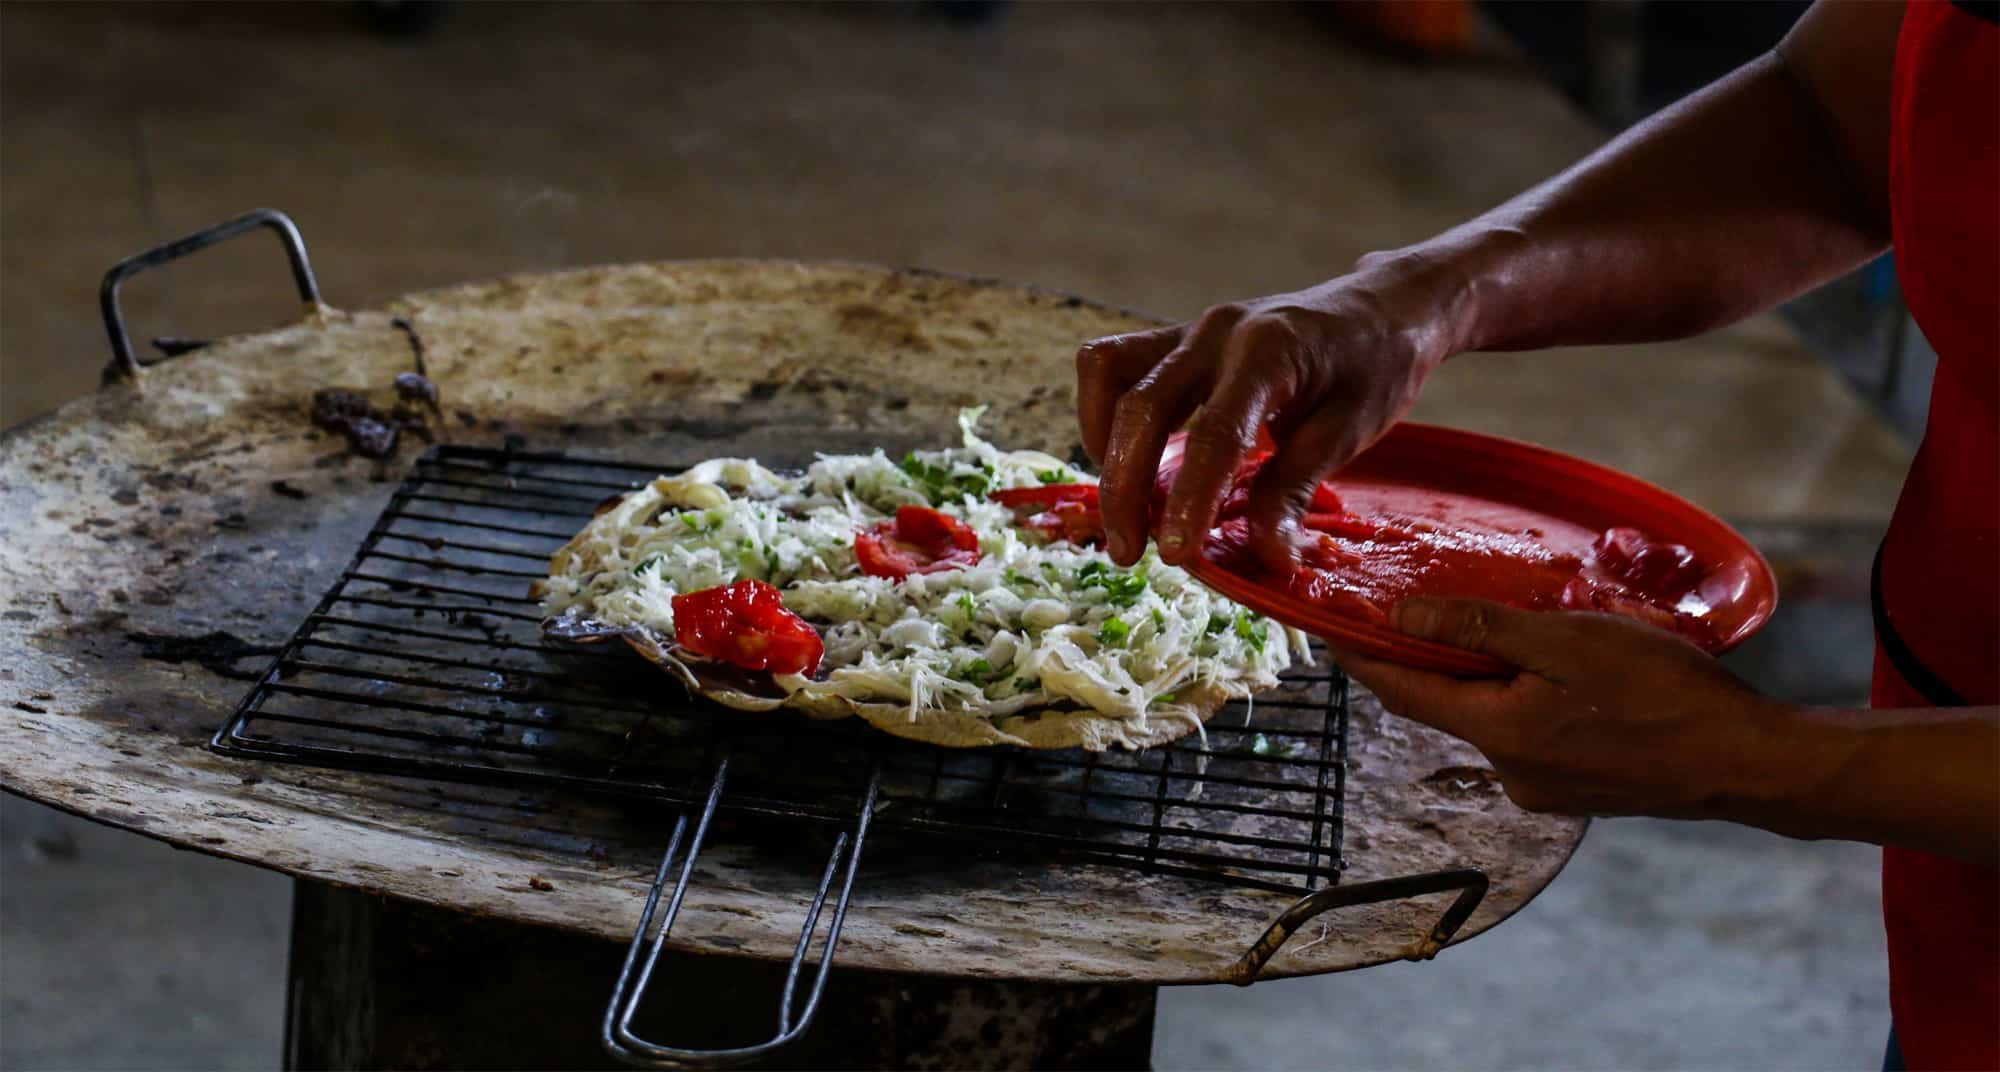 A tlayuda being prepared over charcoal. While maybe not the best food in Oaxaca, it's close!